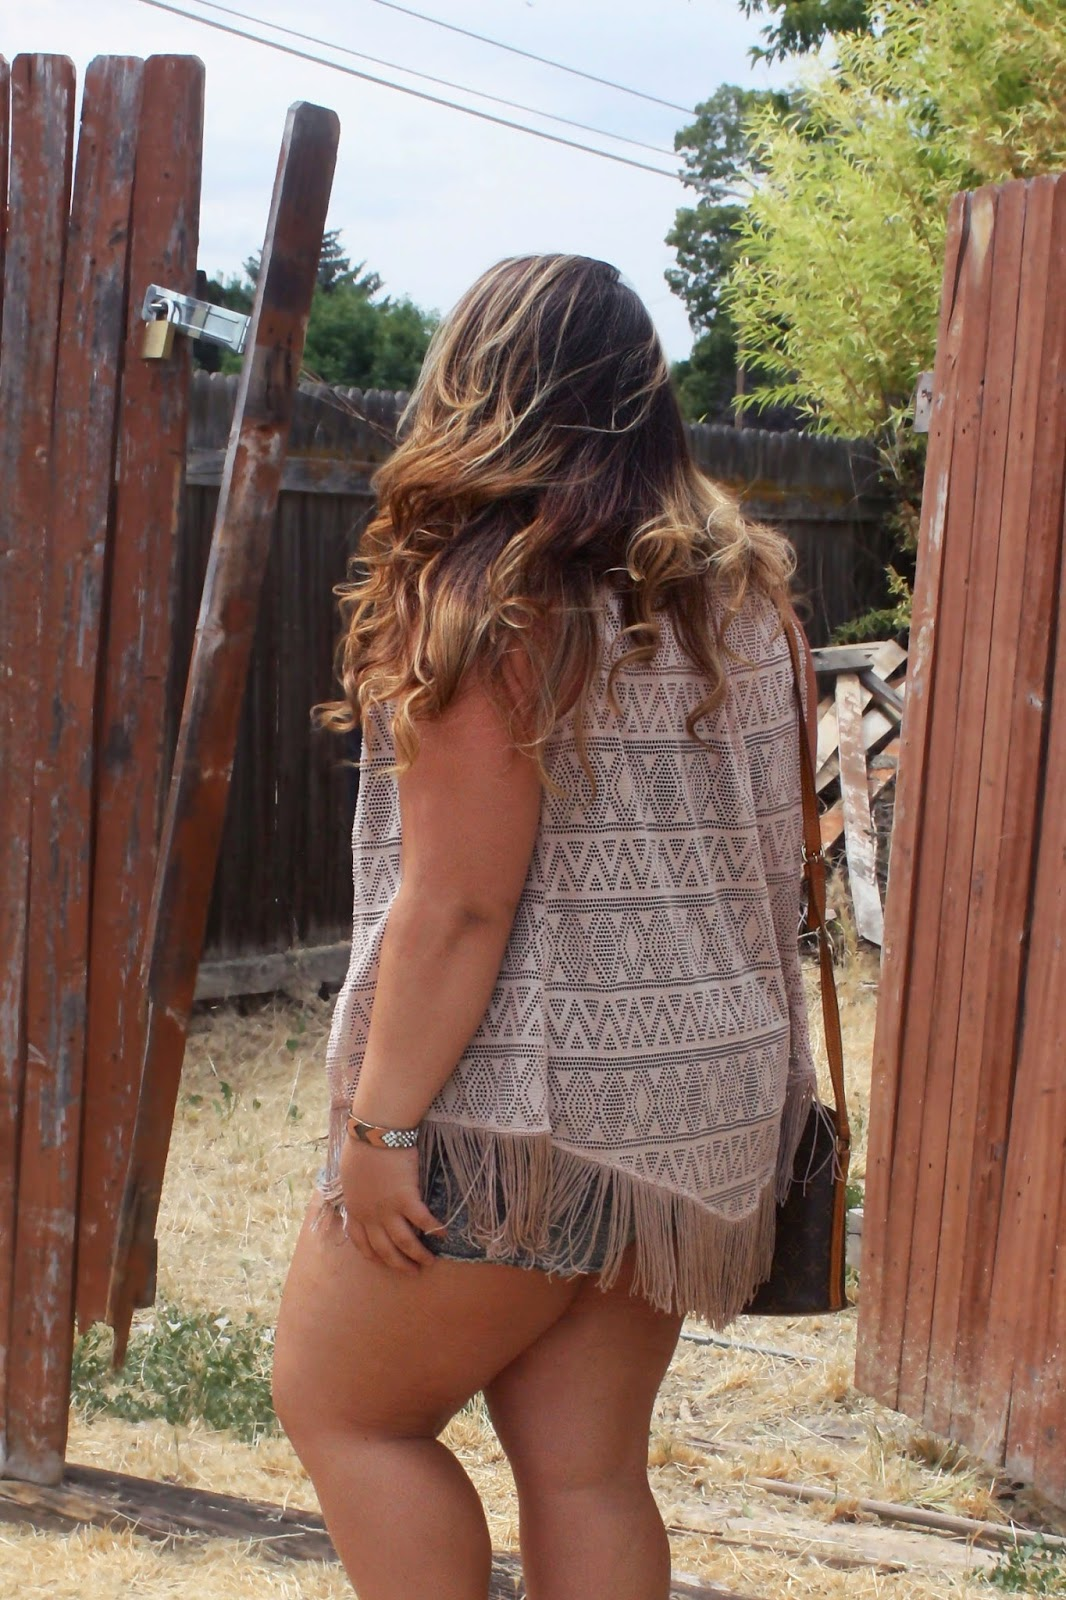 fringe, natalie craig, natalie in the city, country style, abandoned house, spikes, BKE, Buckle, Daytrip, Forever 21 plus size, plus size fashion blogger, style, OOTD, nose ring, shorts, fringe, tribal, bling, starbucks, passion tea, Louis Vuitton, mix and match jewelry, ombre, curly hair